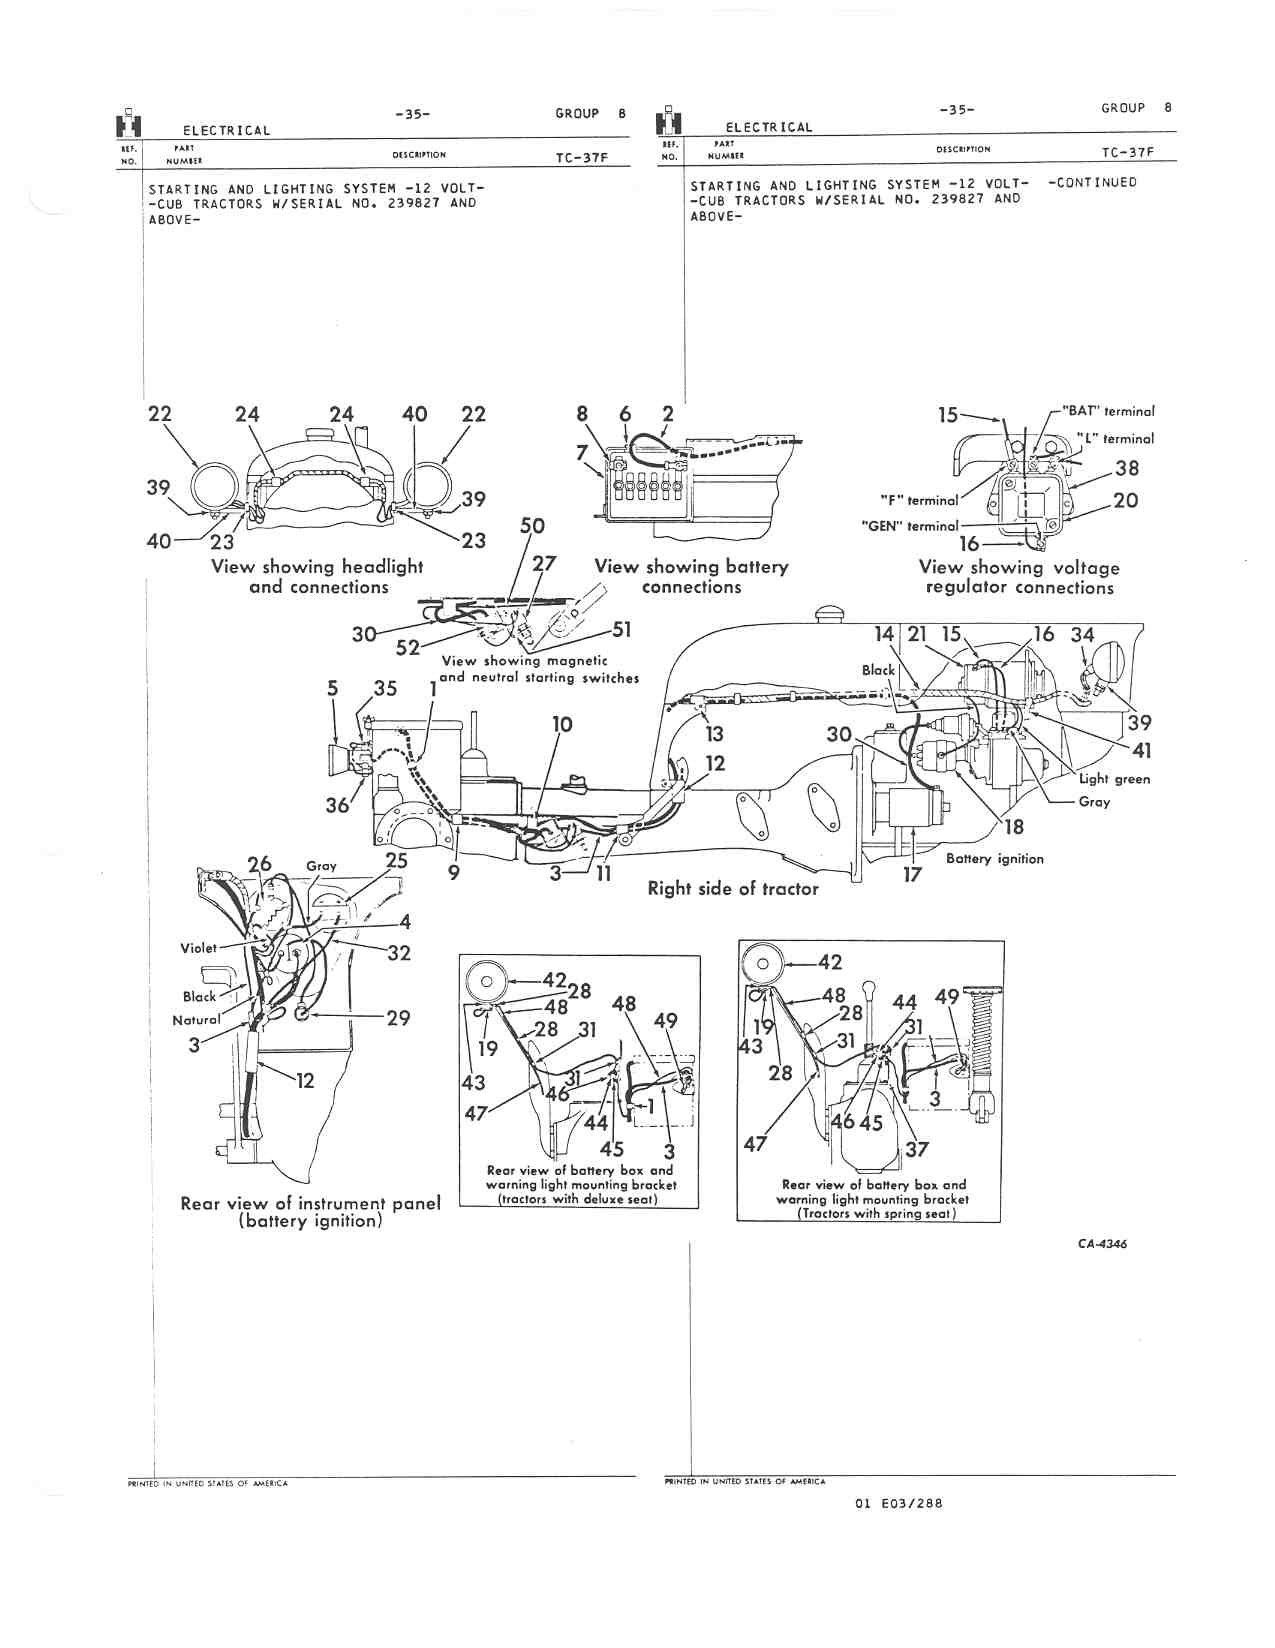 hight resolution of farmall super a pto diagram schema wiring diagrams farmall m parts diagram farmall m pto parts diagram